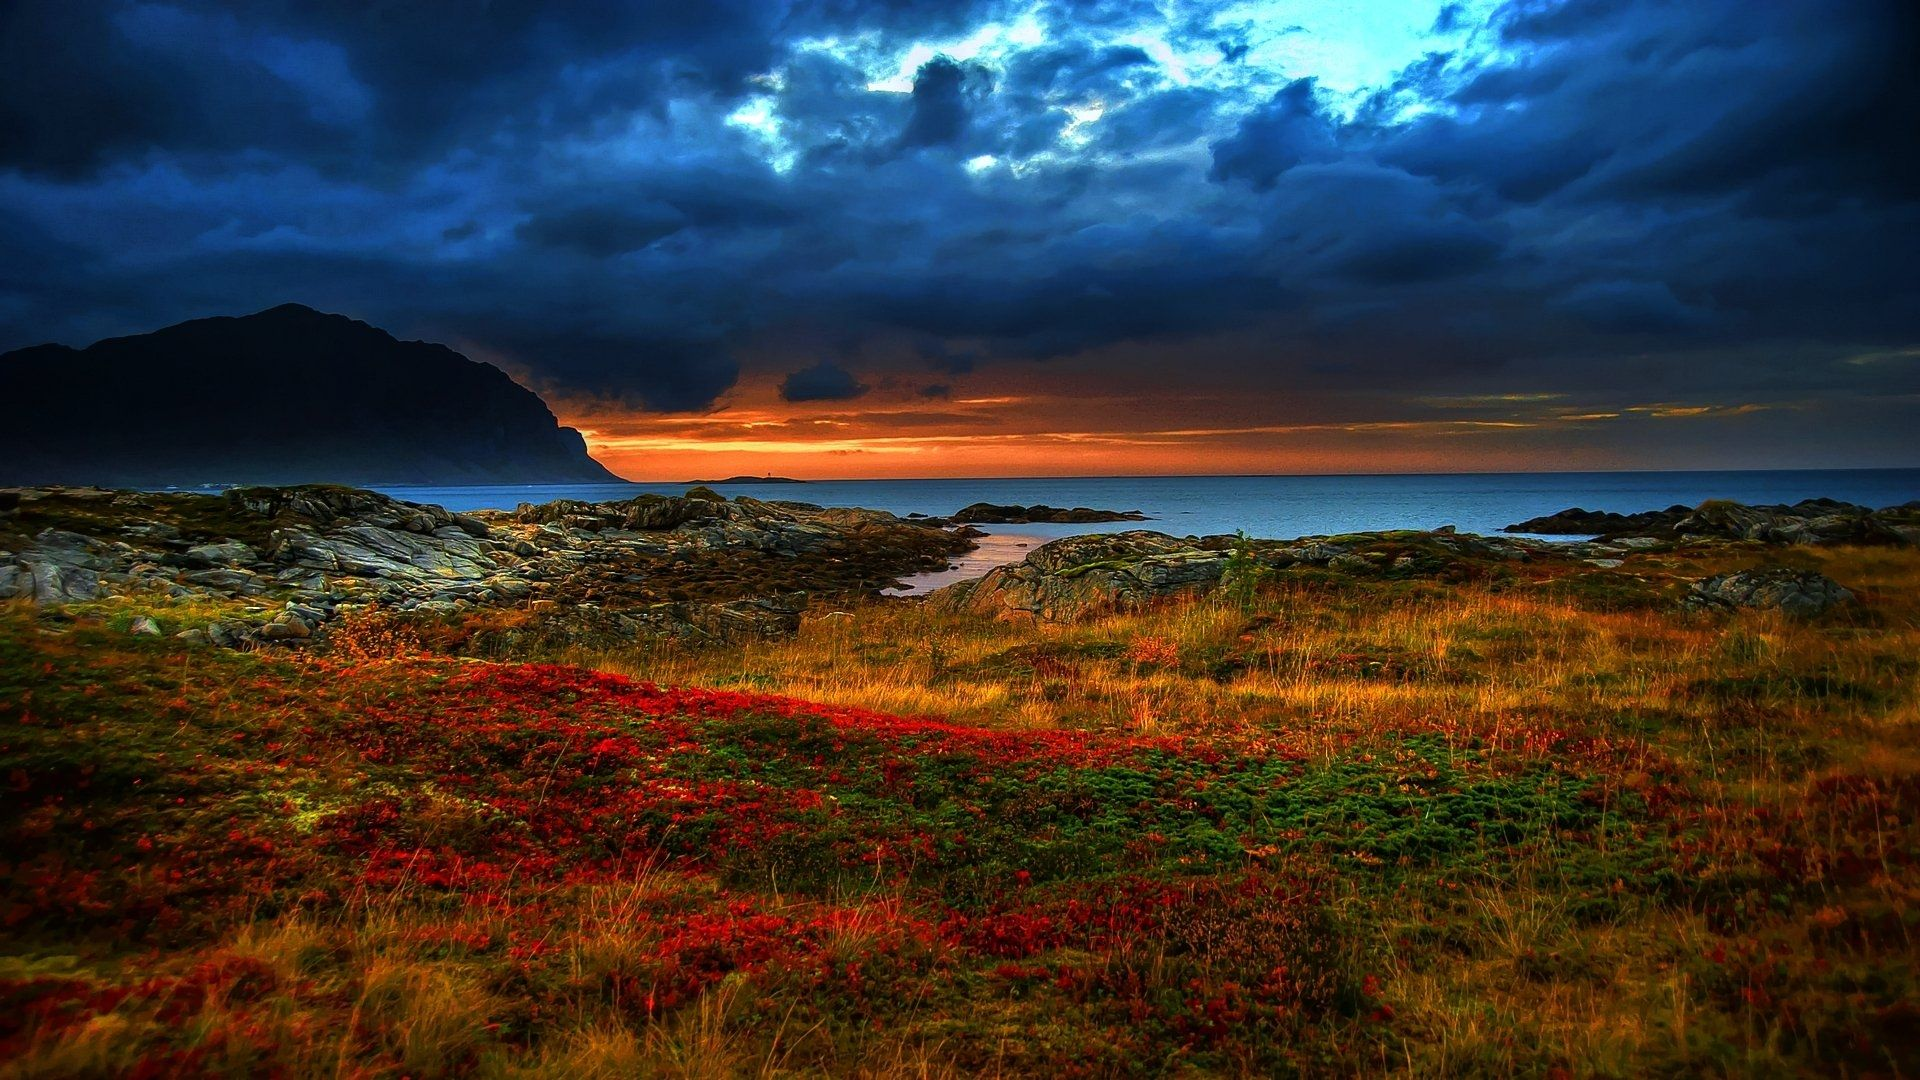 cool backgrounds scenery Download - Scenic Backgrounds Wallpaper for Cool Backgrounds Scenery ...